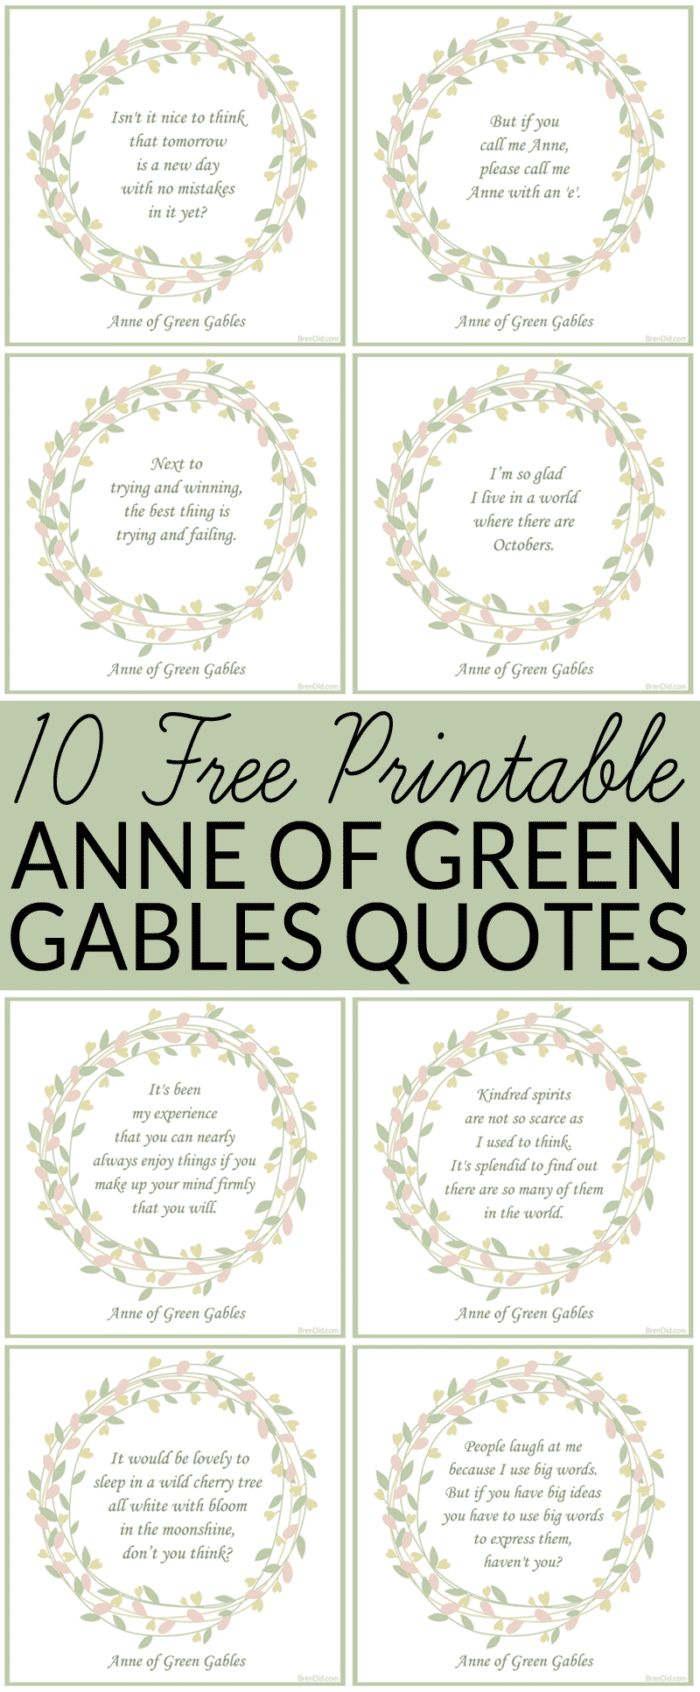 Free Printable Anne of Green Gables Quotes - Anne of Green Gables - 10 free quotes - I'm so glad I live in a world where there are Octobers. via @brendidblog